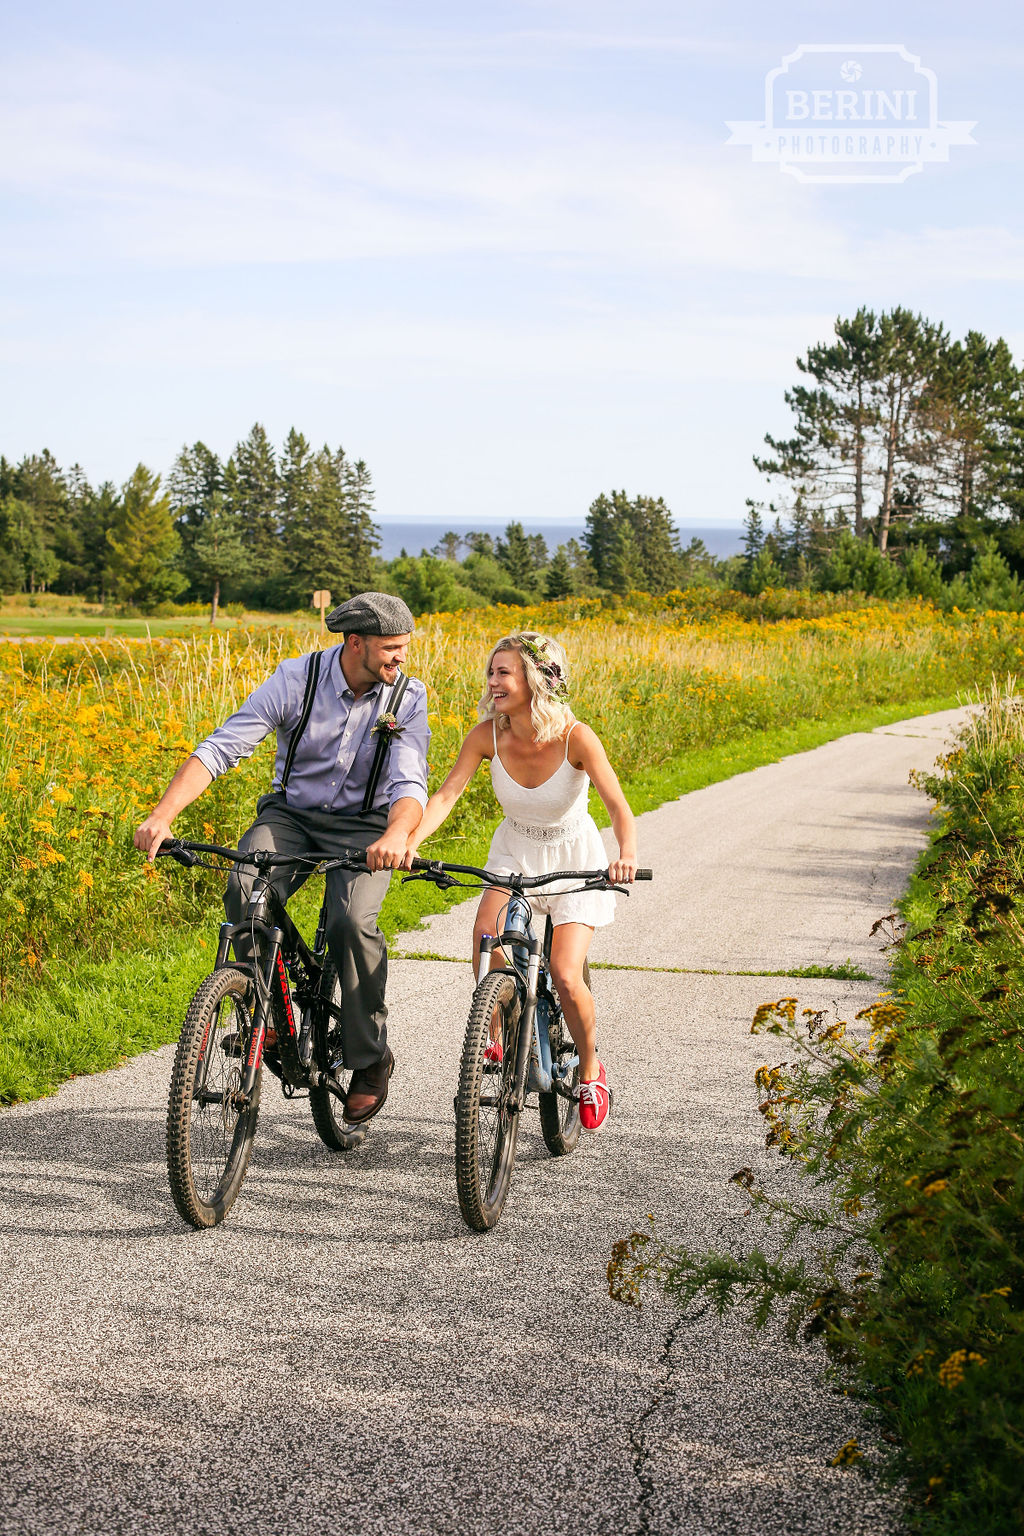 Summer Wedding on the North Shore - What activities do you want to incorporate in to your North Shore wedding? Hit the bike trails, get out on Lake Superior in a kayak, put on your hiking boots and dress and get to some of the best views. The possibilities are endless, Northern Nights is here to help you carefully make every detail speak your style.